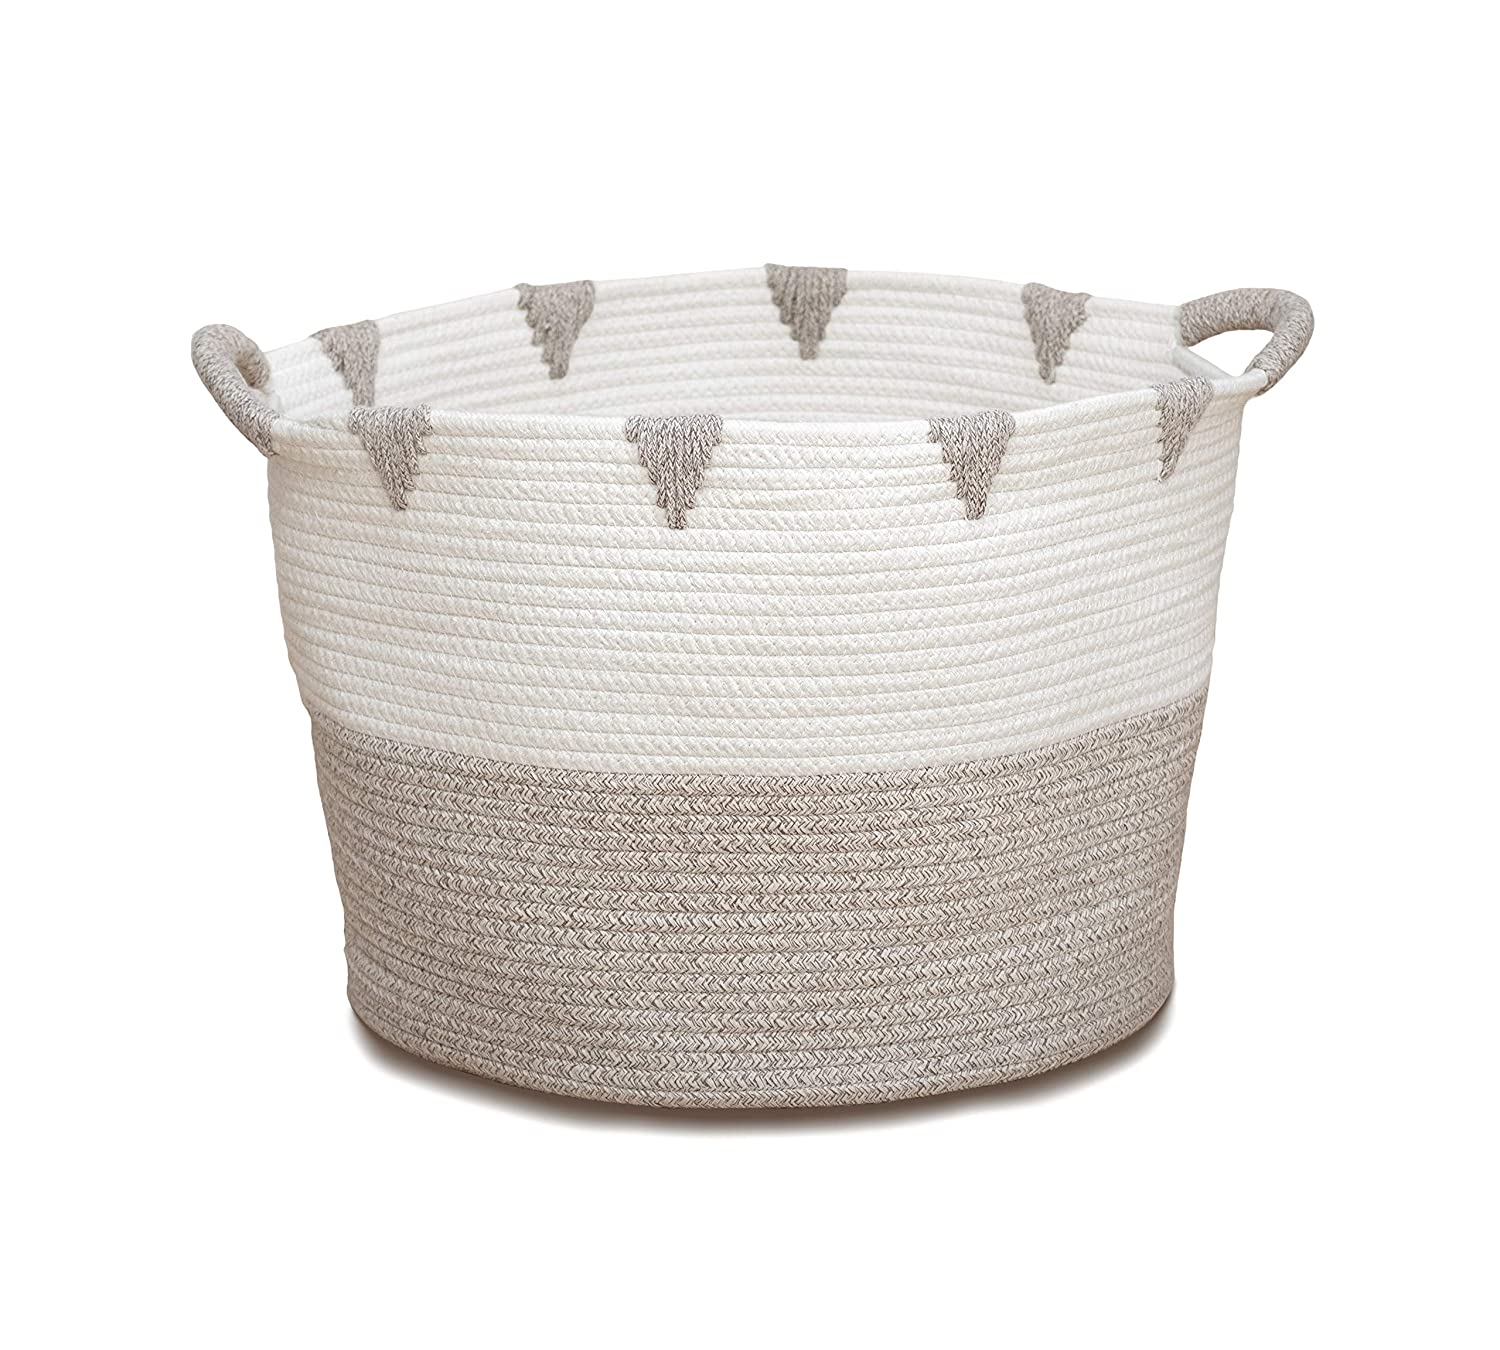 We Care Vida Storage Baskets | Woven Basket Made from Cotton Rope | Baby Laundry Basket with Handle | Decorative Nursery Hamper | Perfect Blanket Basket for Your Living Room